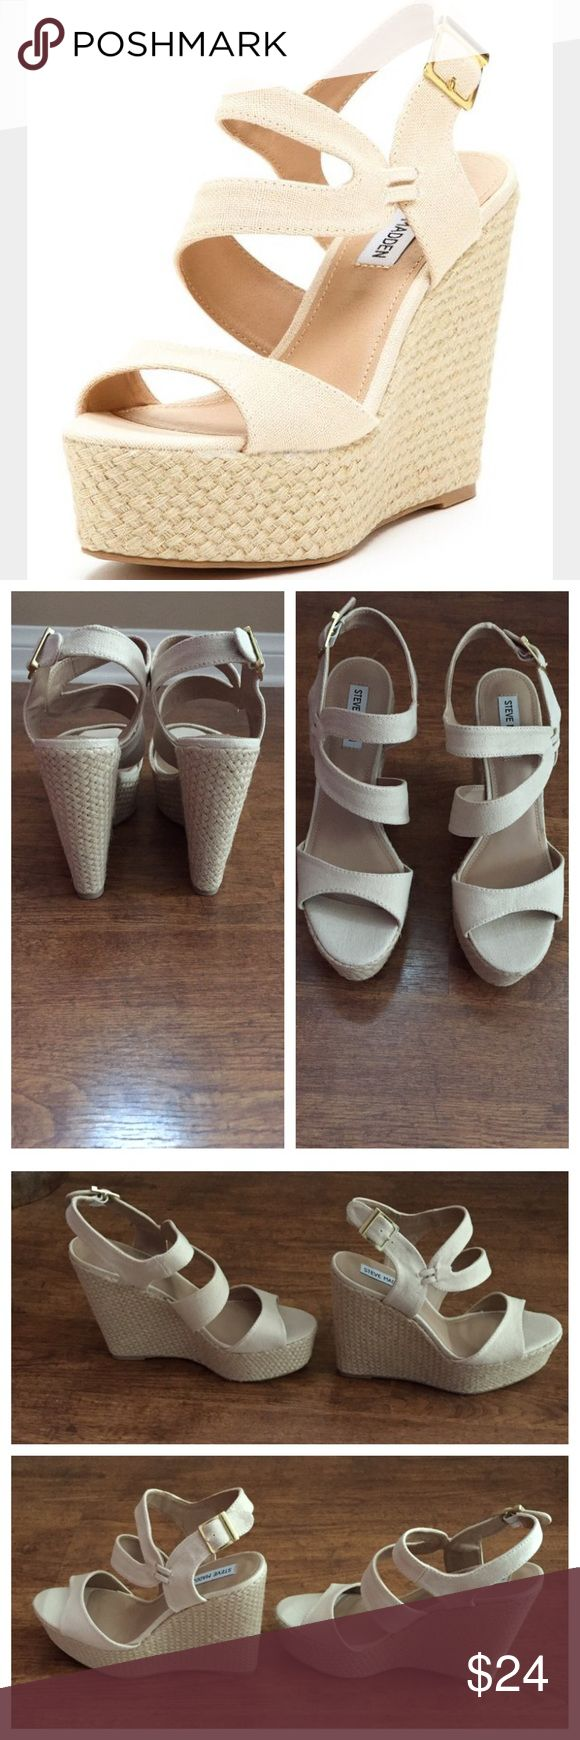 """Steve Madden """"Jenny"""" Shoes Platform Wedge Great condition platforms with 5"""" heel and 1.5"""" platform. 👗👚👜Check out the $6 section of my closet (before the sold items). Lots of bundle-worthy $6 items! 15% bundle discount on 2+ items in a bundle.🚫NO TRADES🚫 Steve Madden Shoes Wedges"""